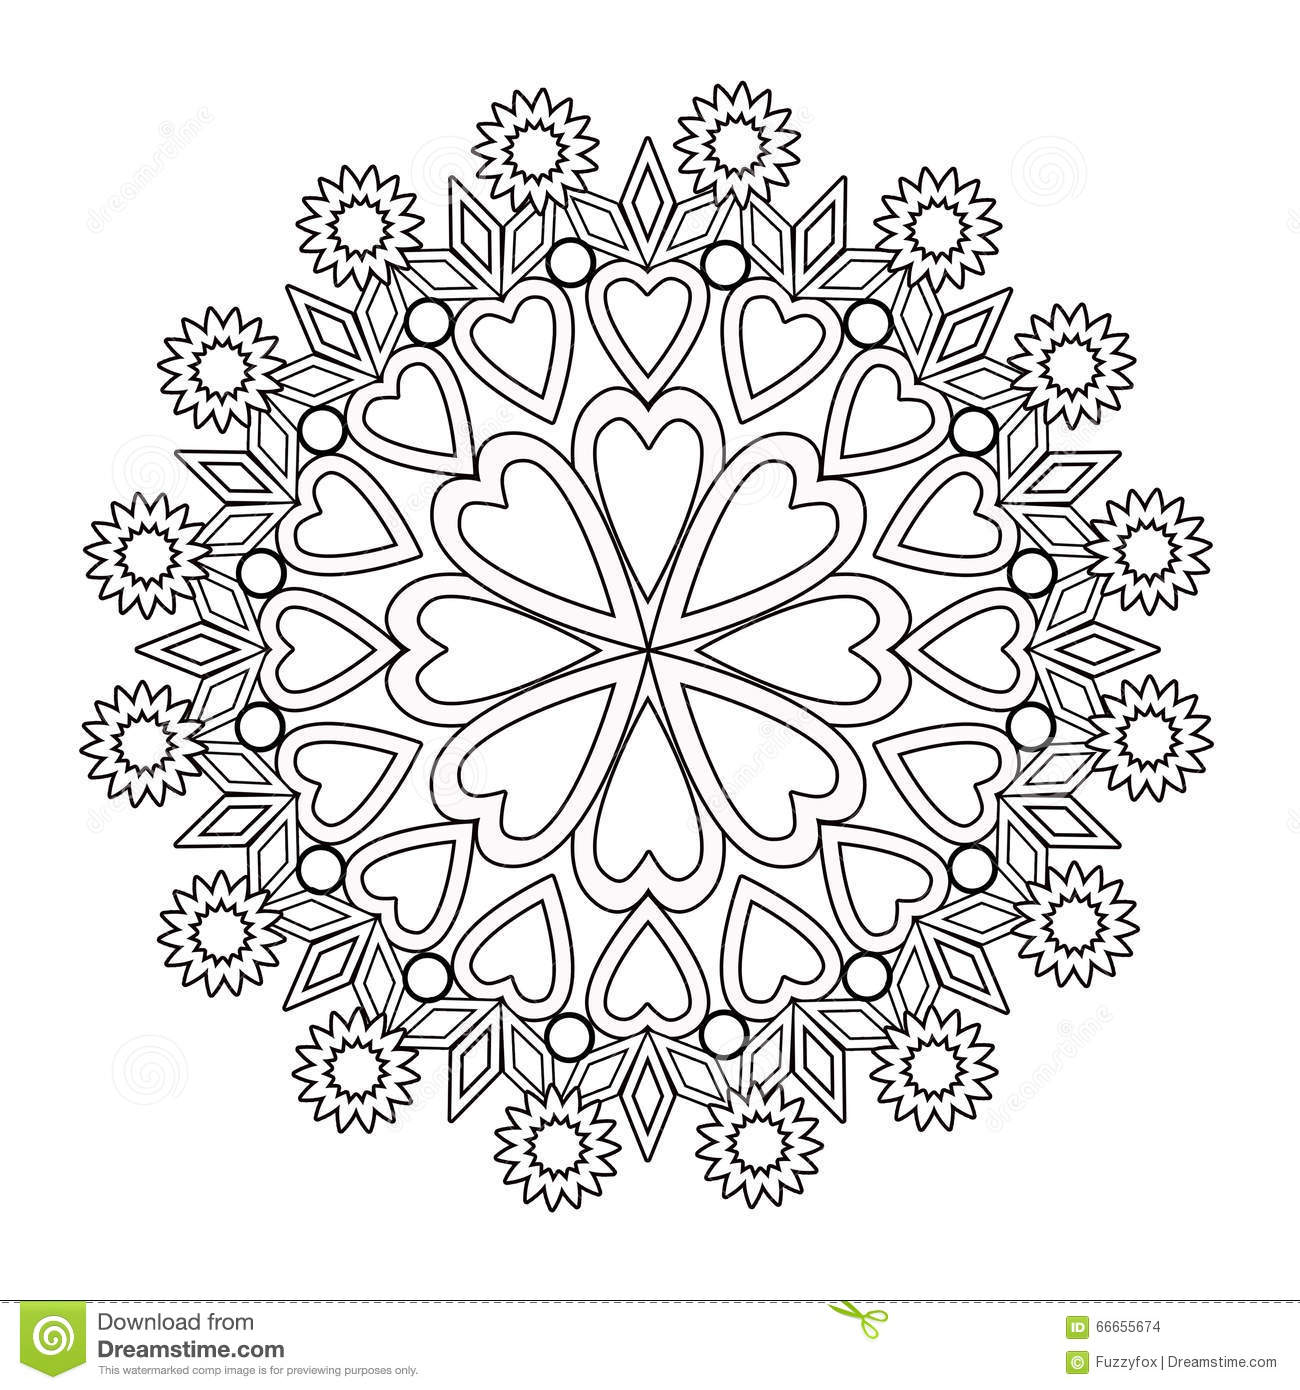 Coloring Page Adult Book. Floral Illustration Black And